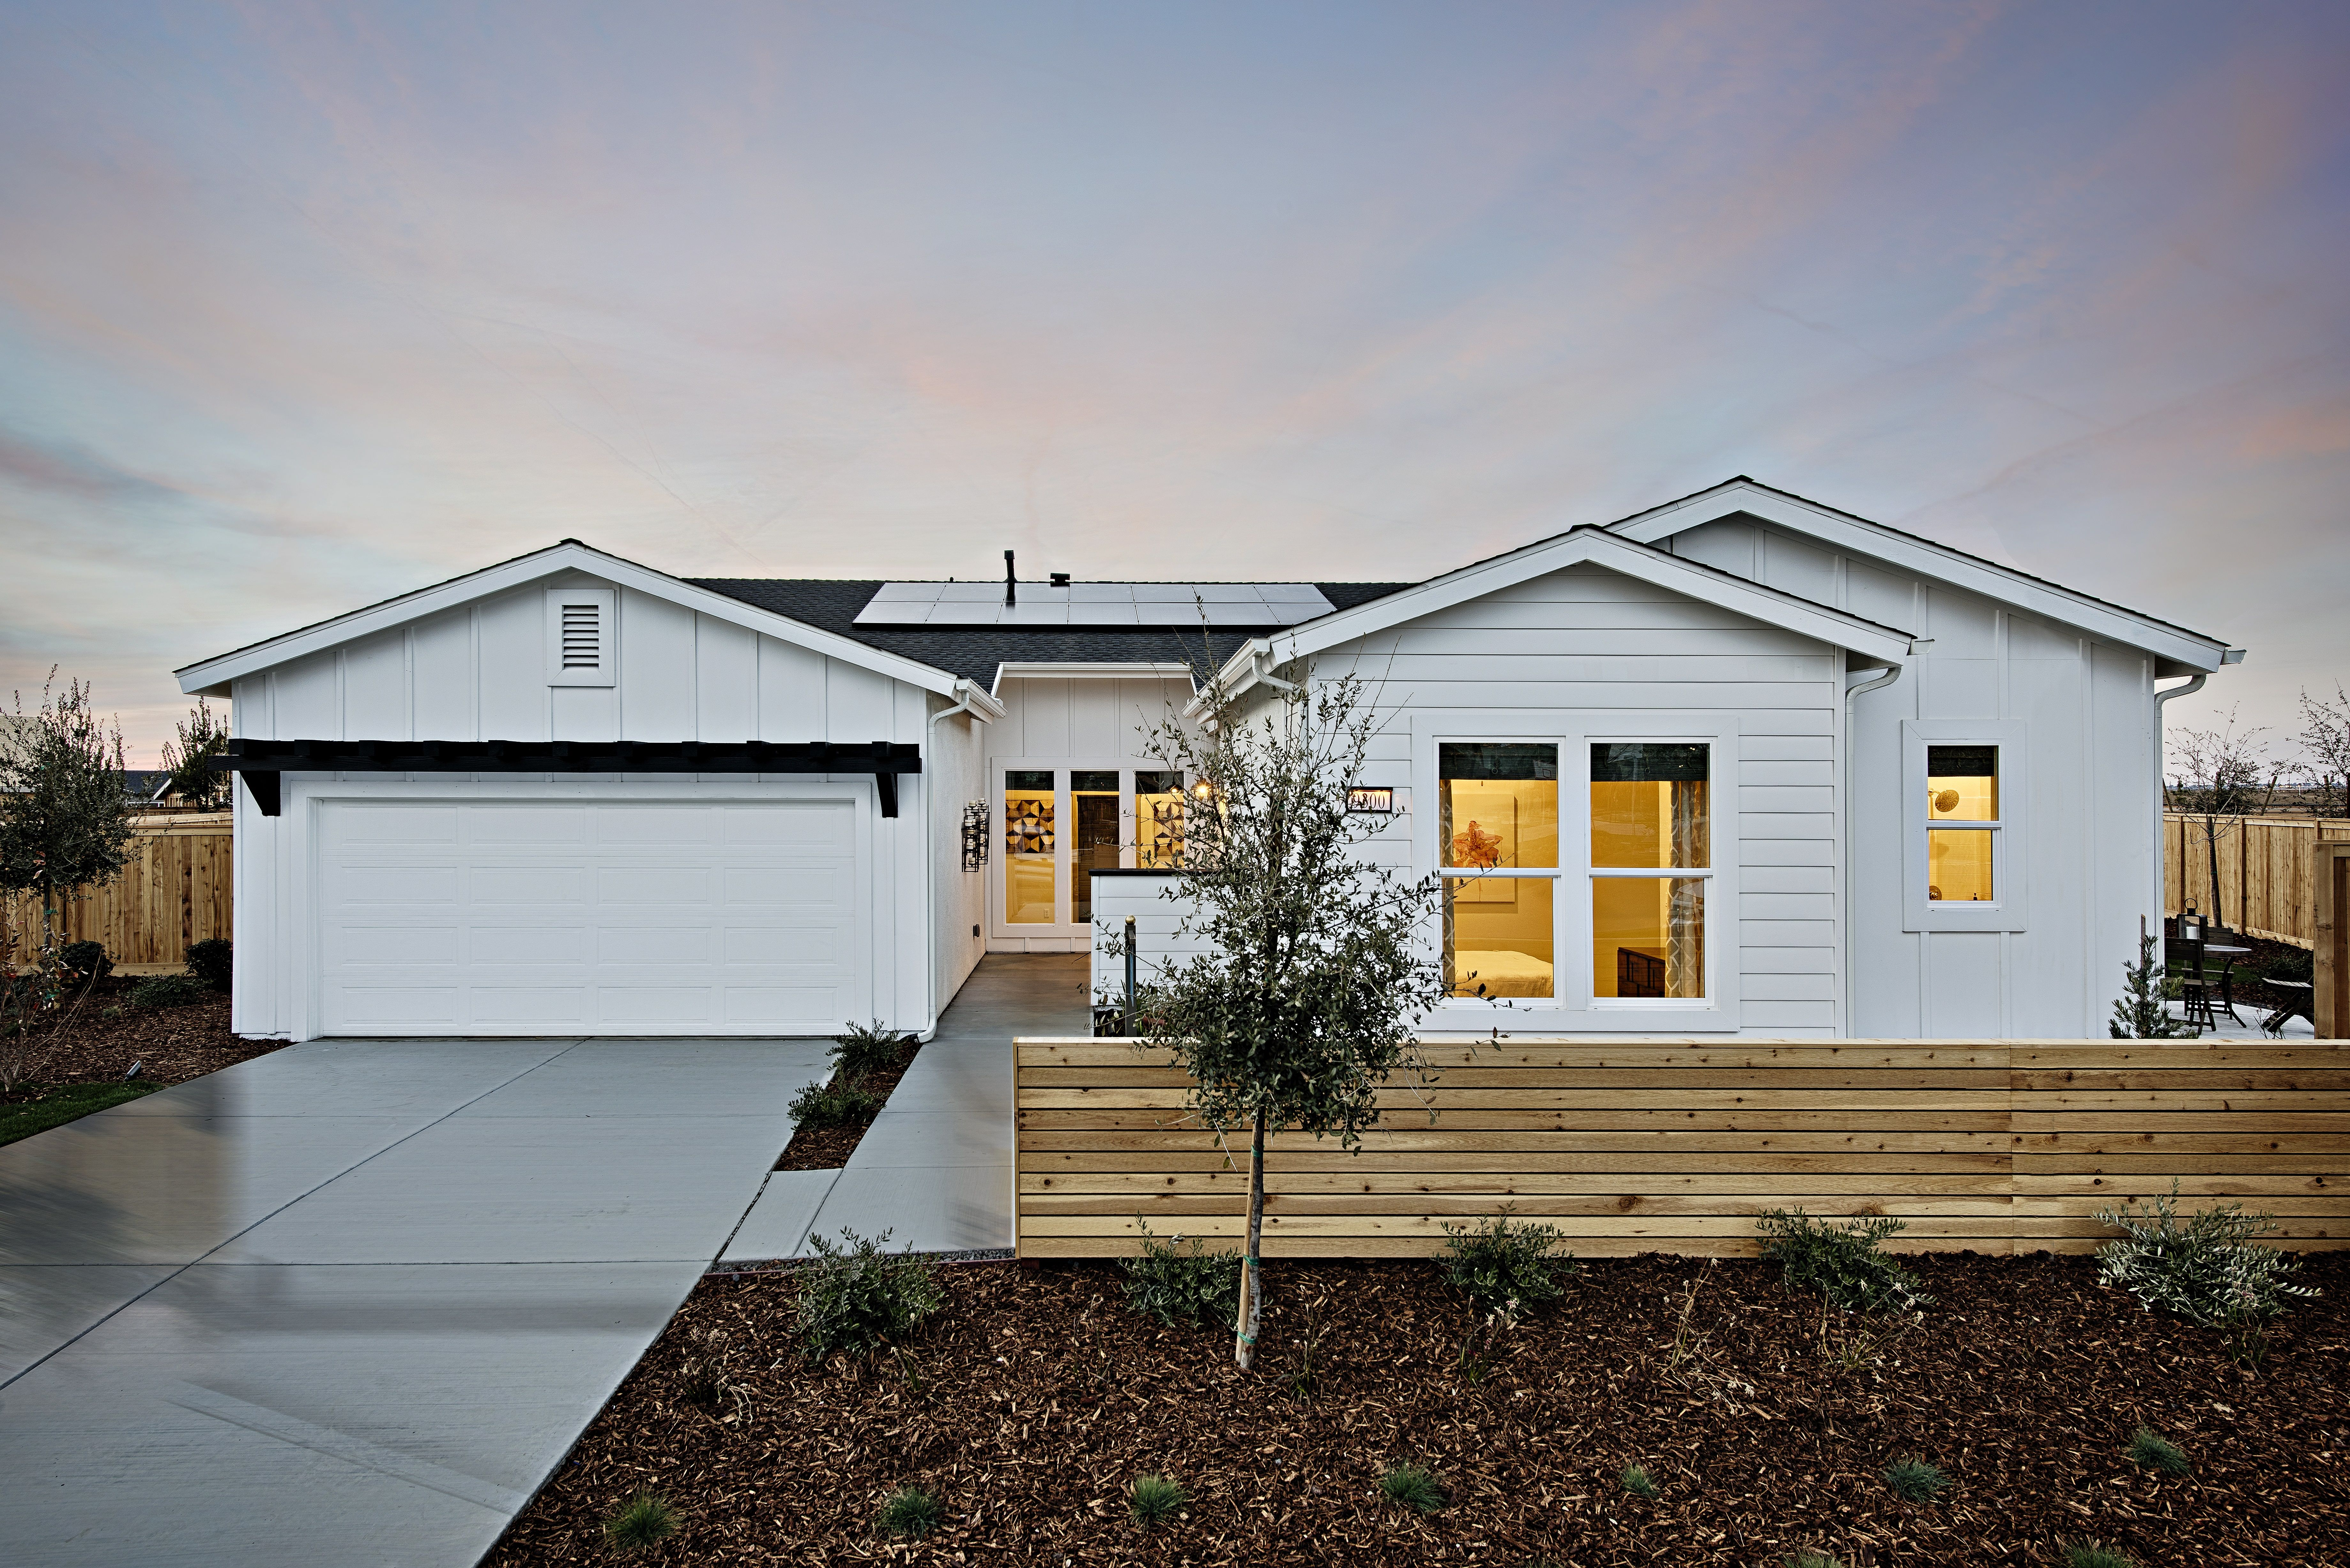 All White Siding Single Story Exterior With Black Accents New House Plans House Plans House Design